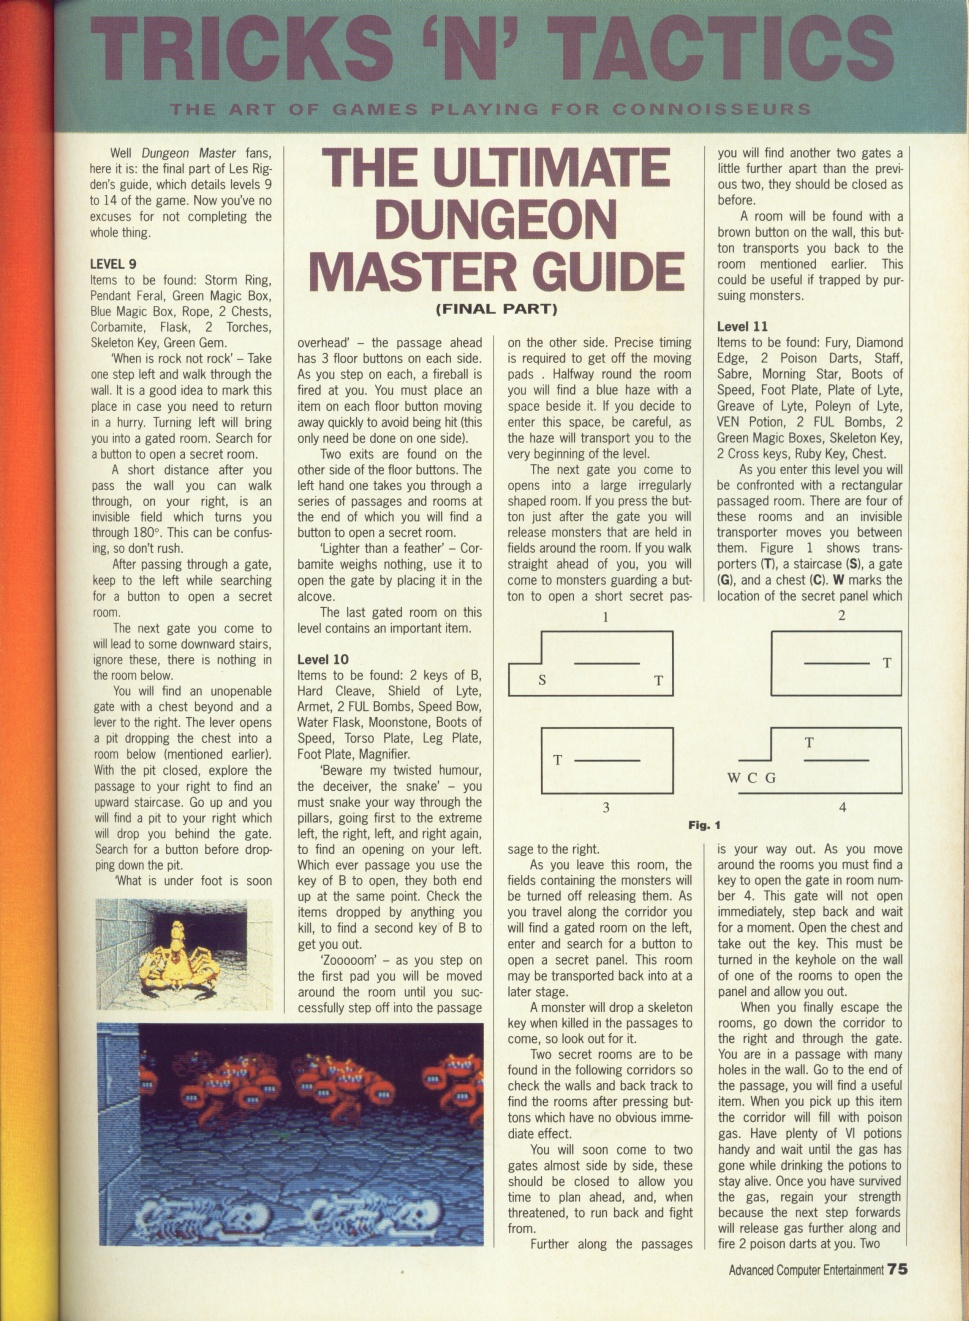 Dungeon Master Guide published in British magazine 'Advanced Computer Entertainment', Issue #32 May 1990, Page 75